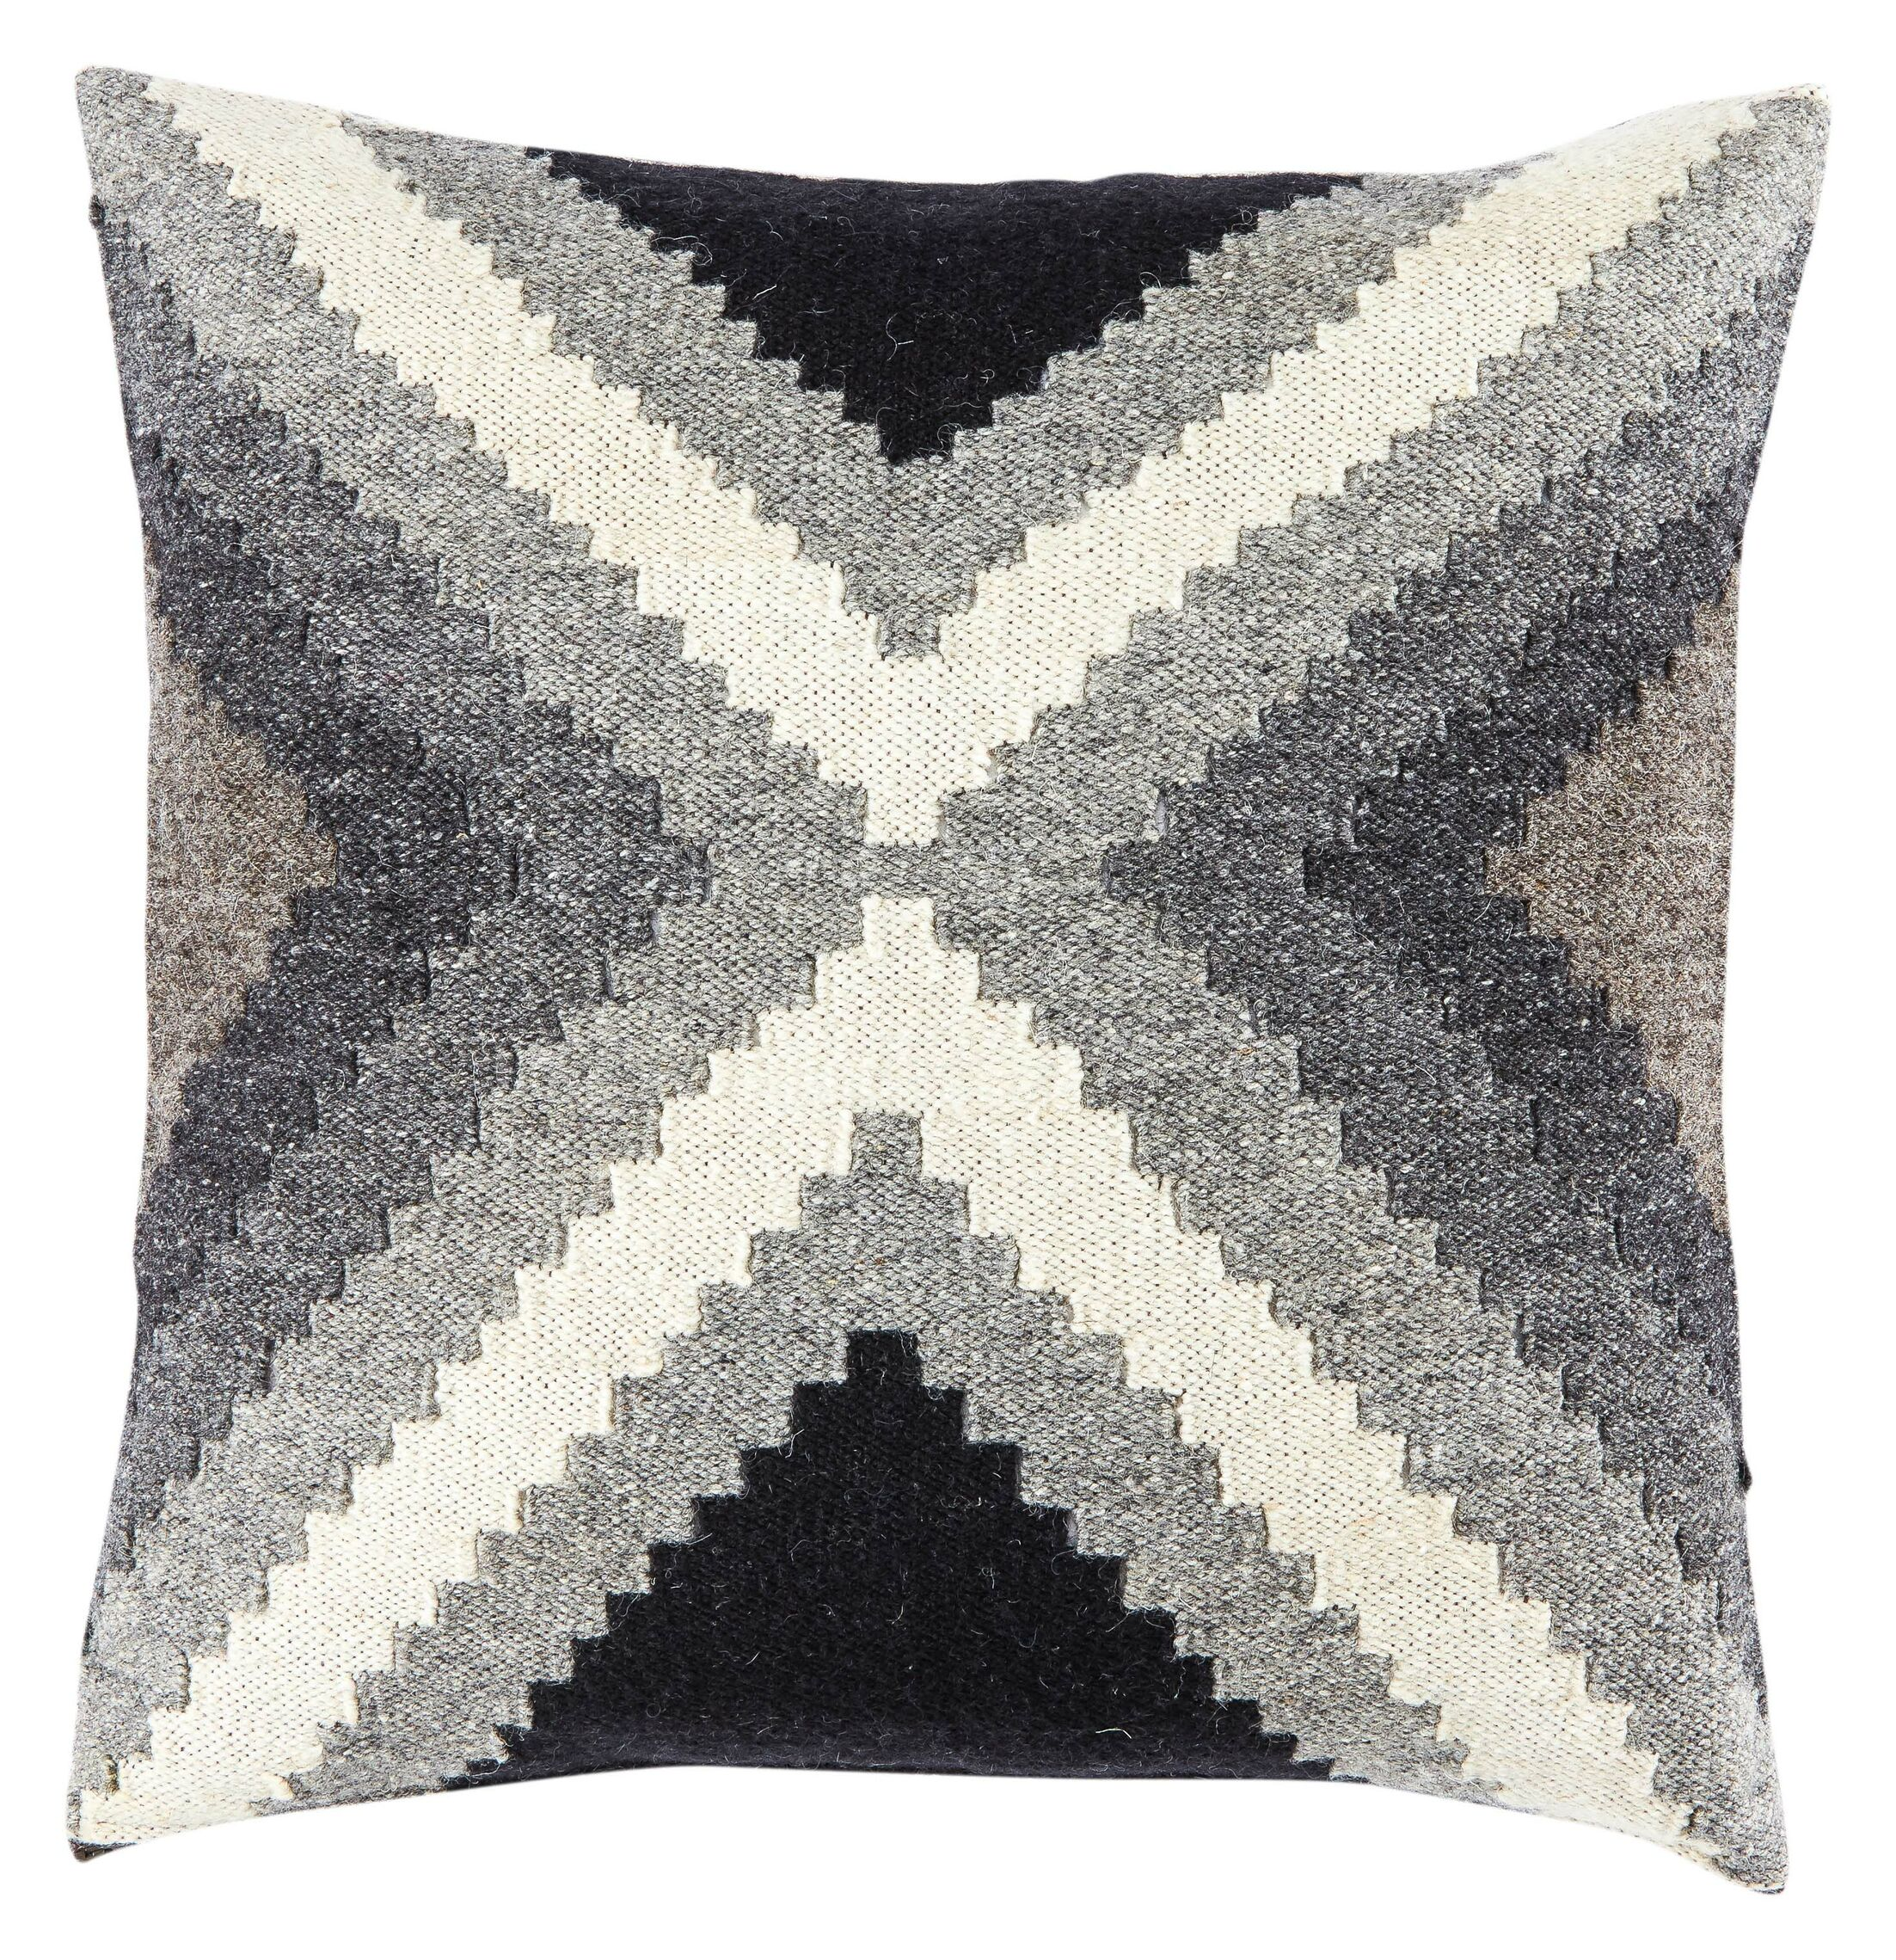 Dorsey Throw Pillow Fill Material: Down/Feather